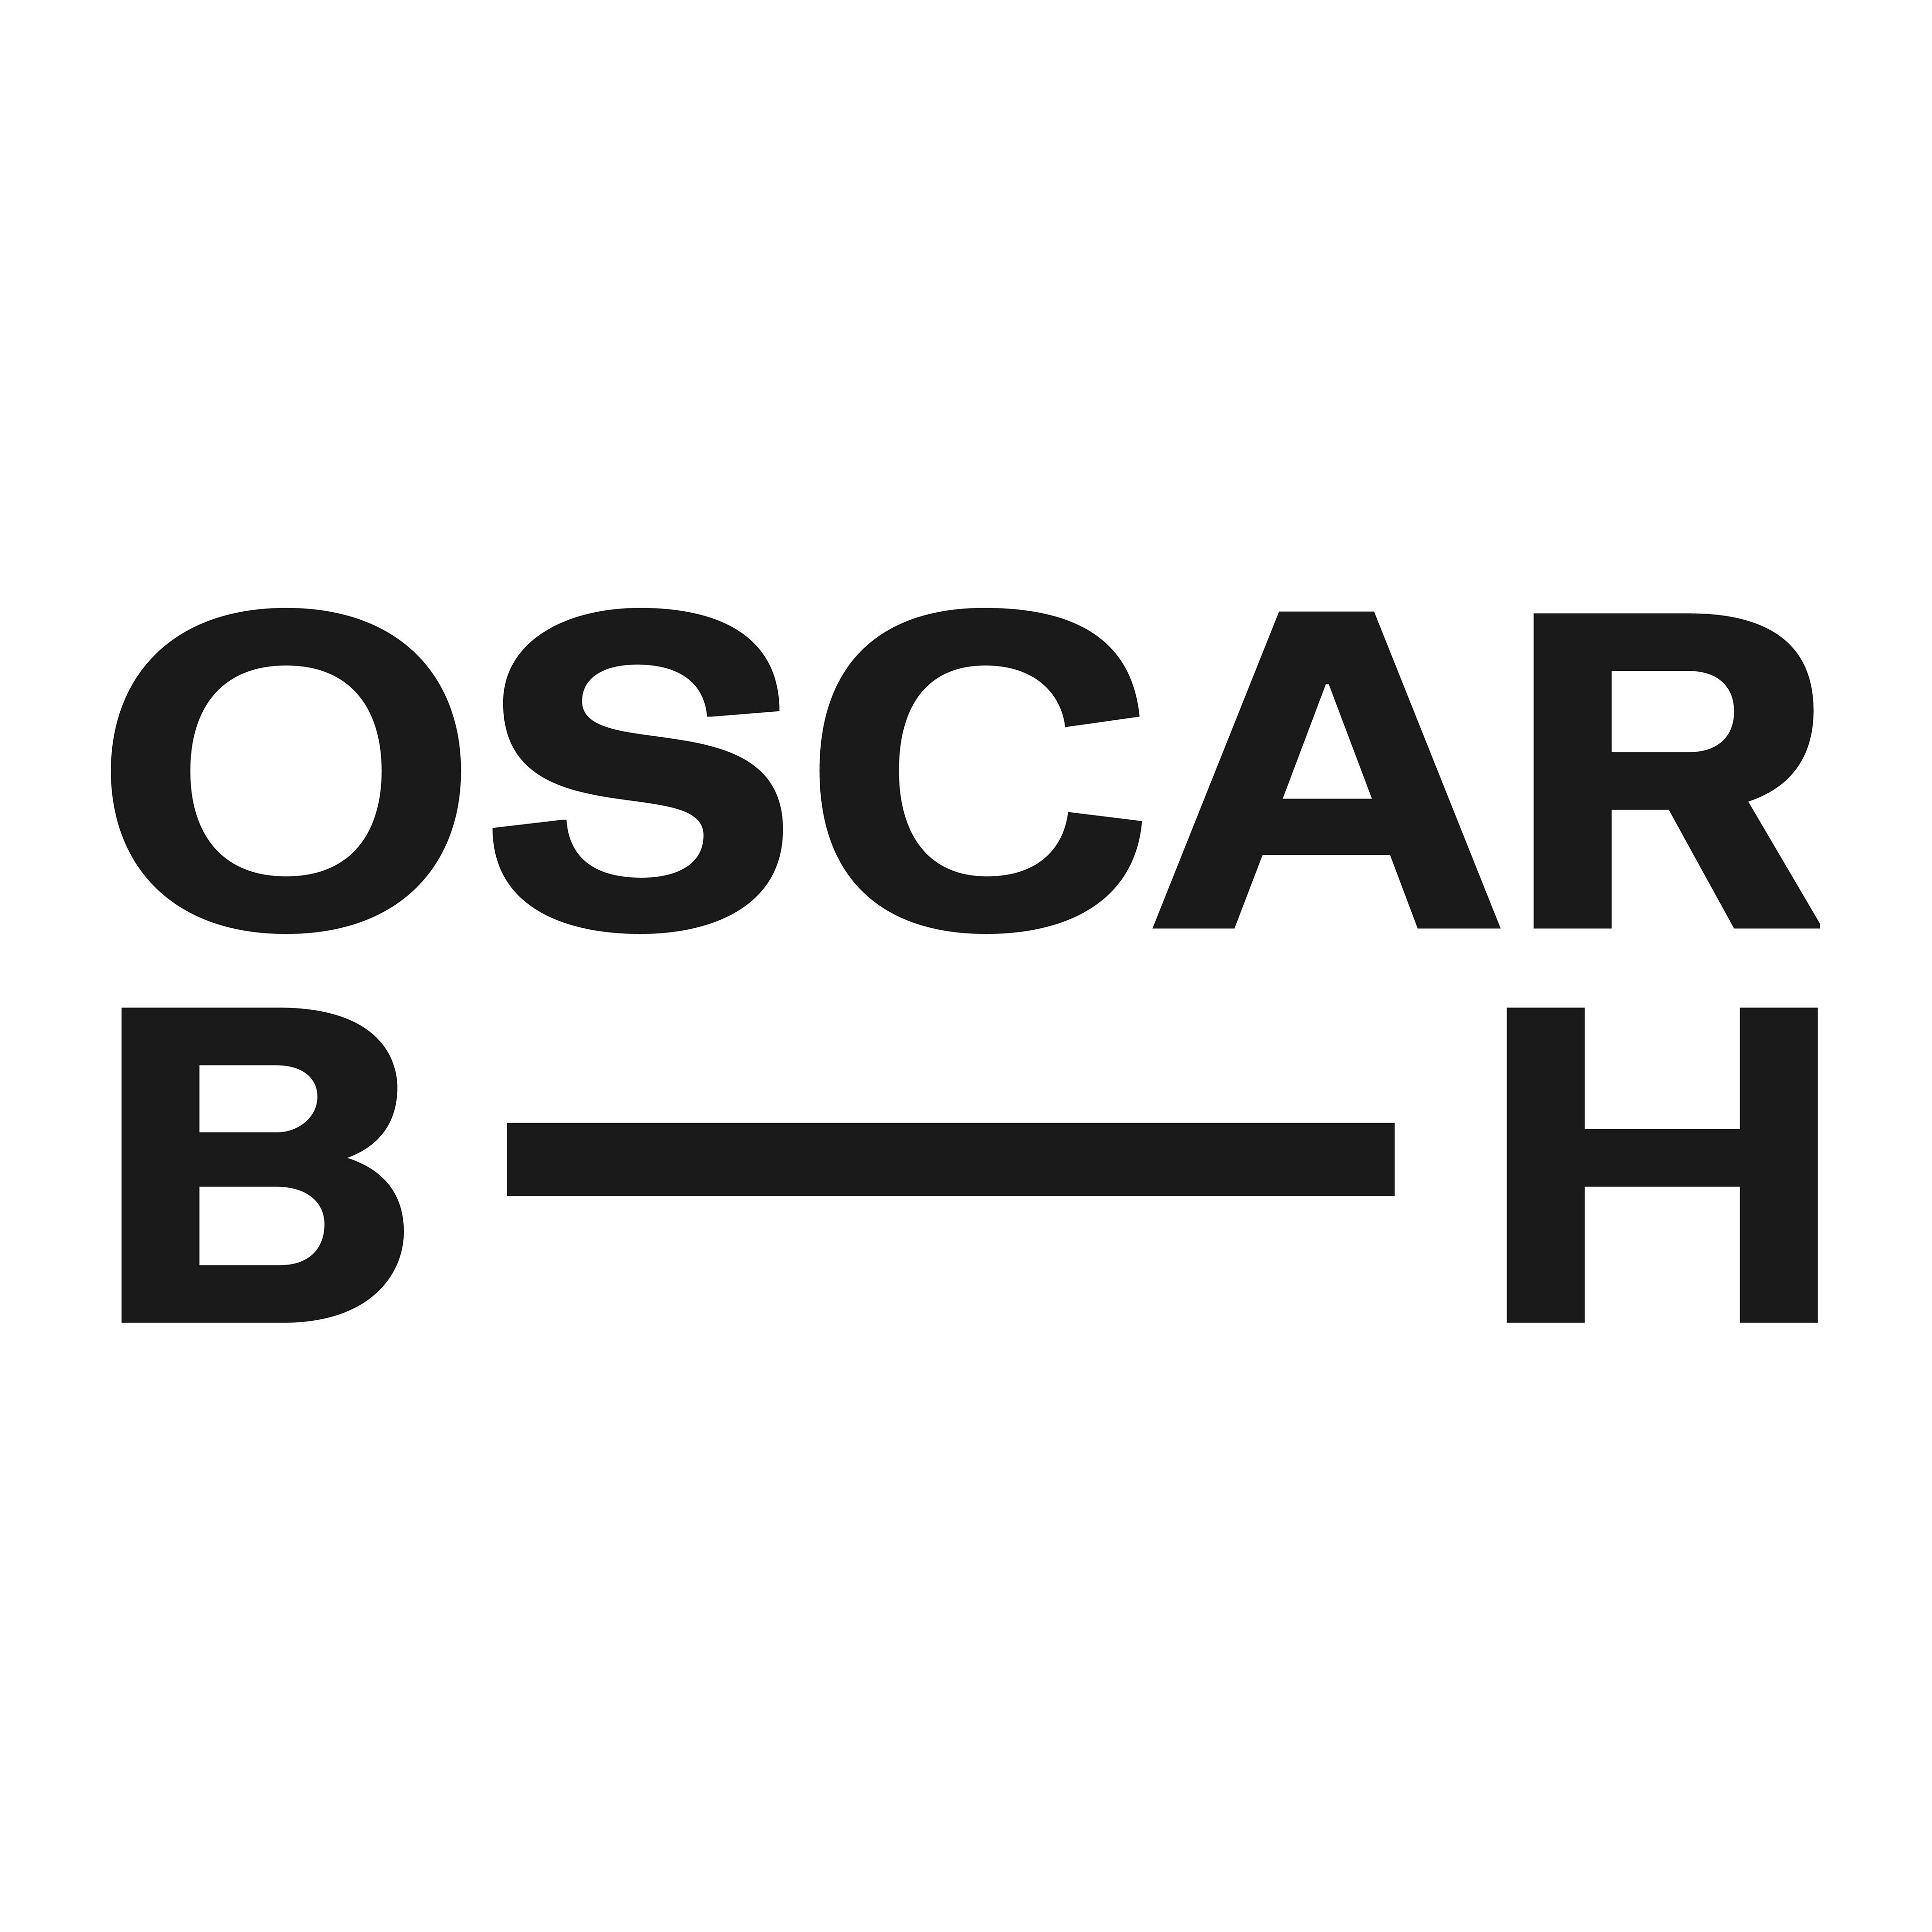 Oscar Briscall-Harvey